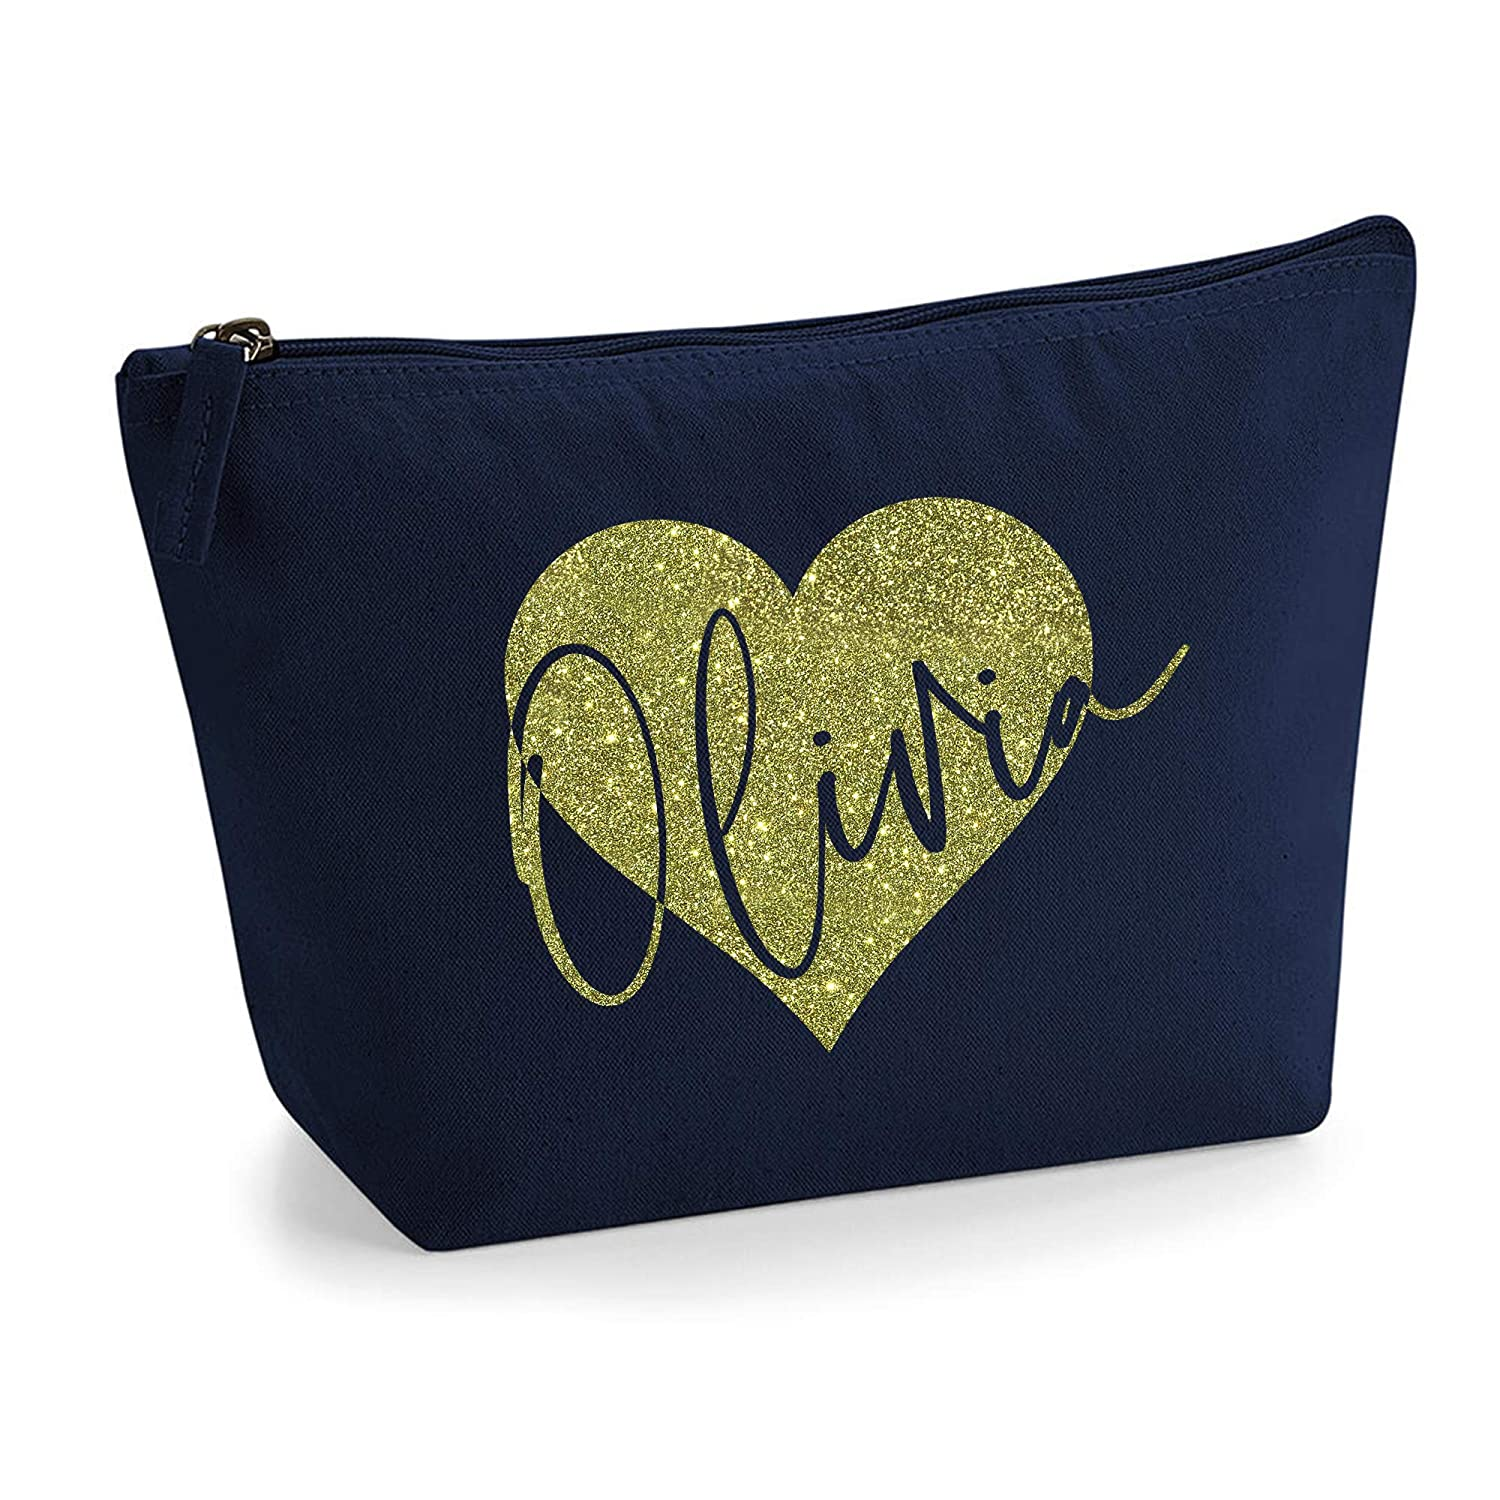 Personalized Name Initials in Heart Make Up Multi Purpose Accessory Bag - L - Navy Bag - Gold Glitter